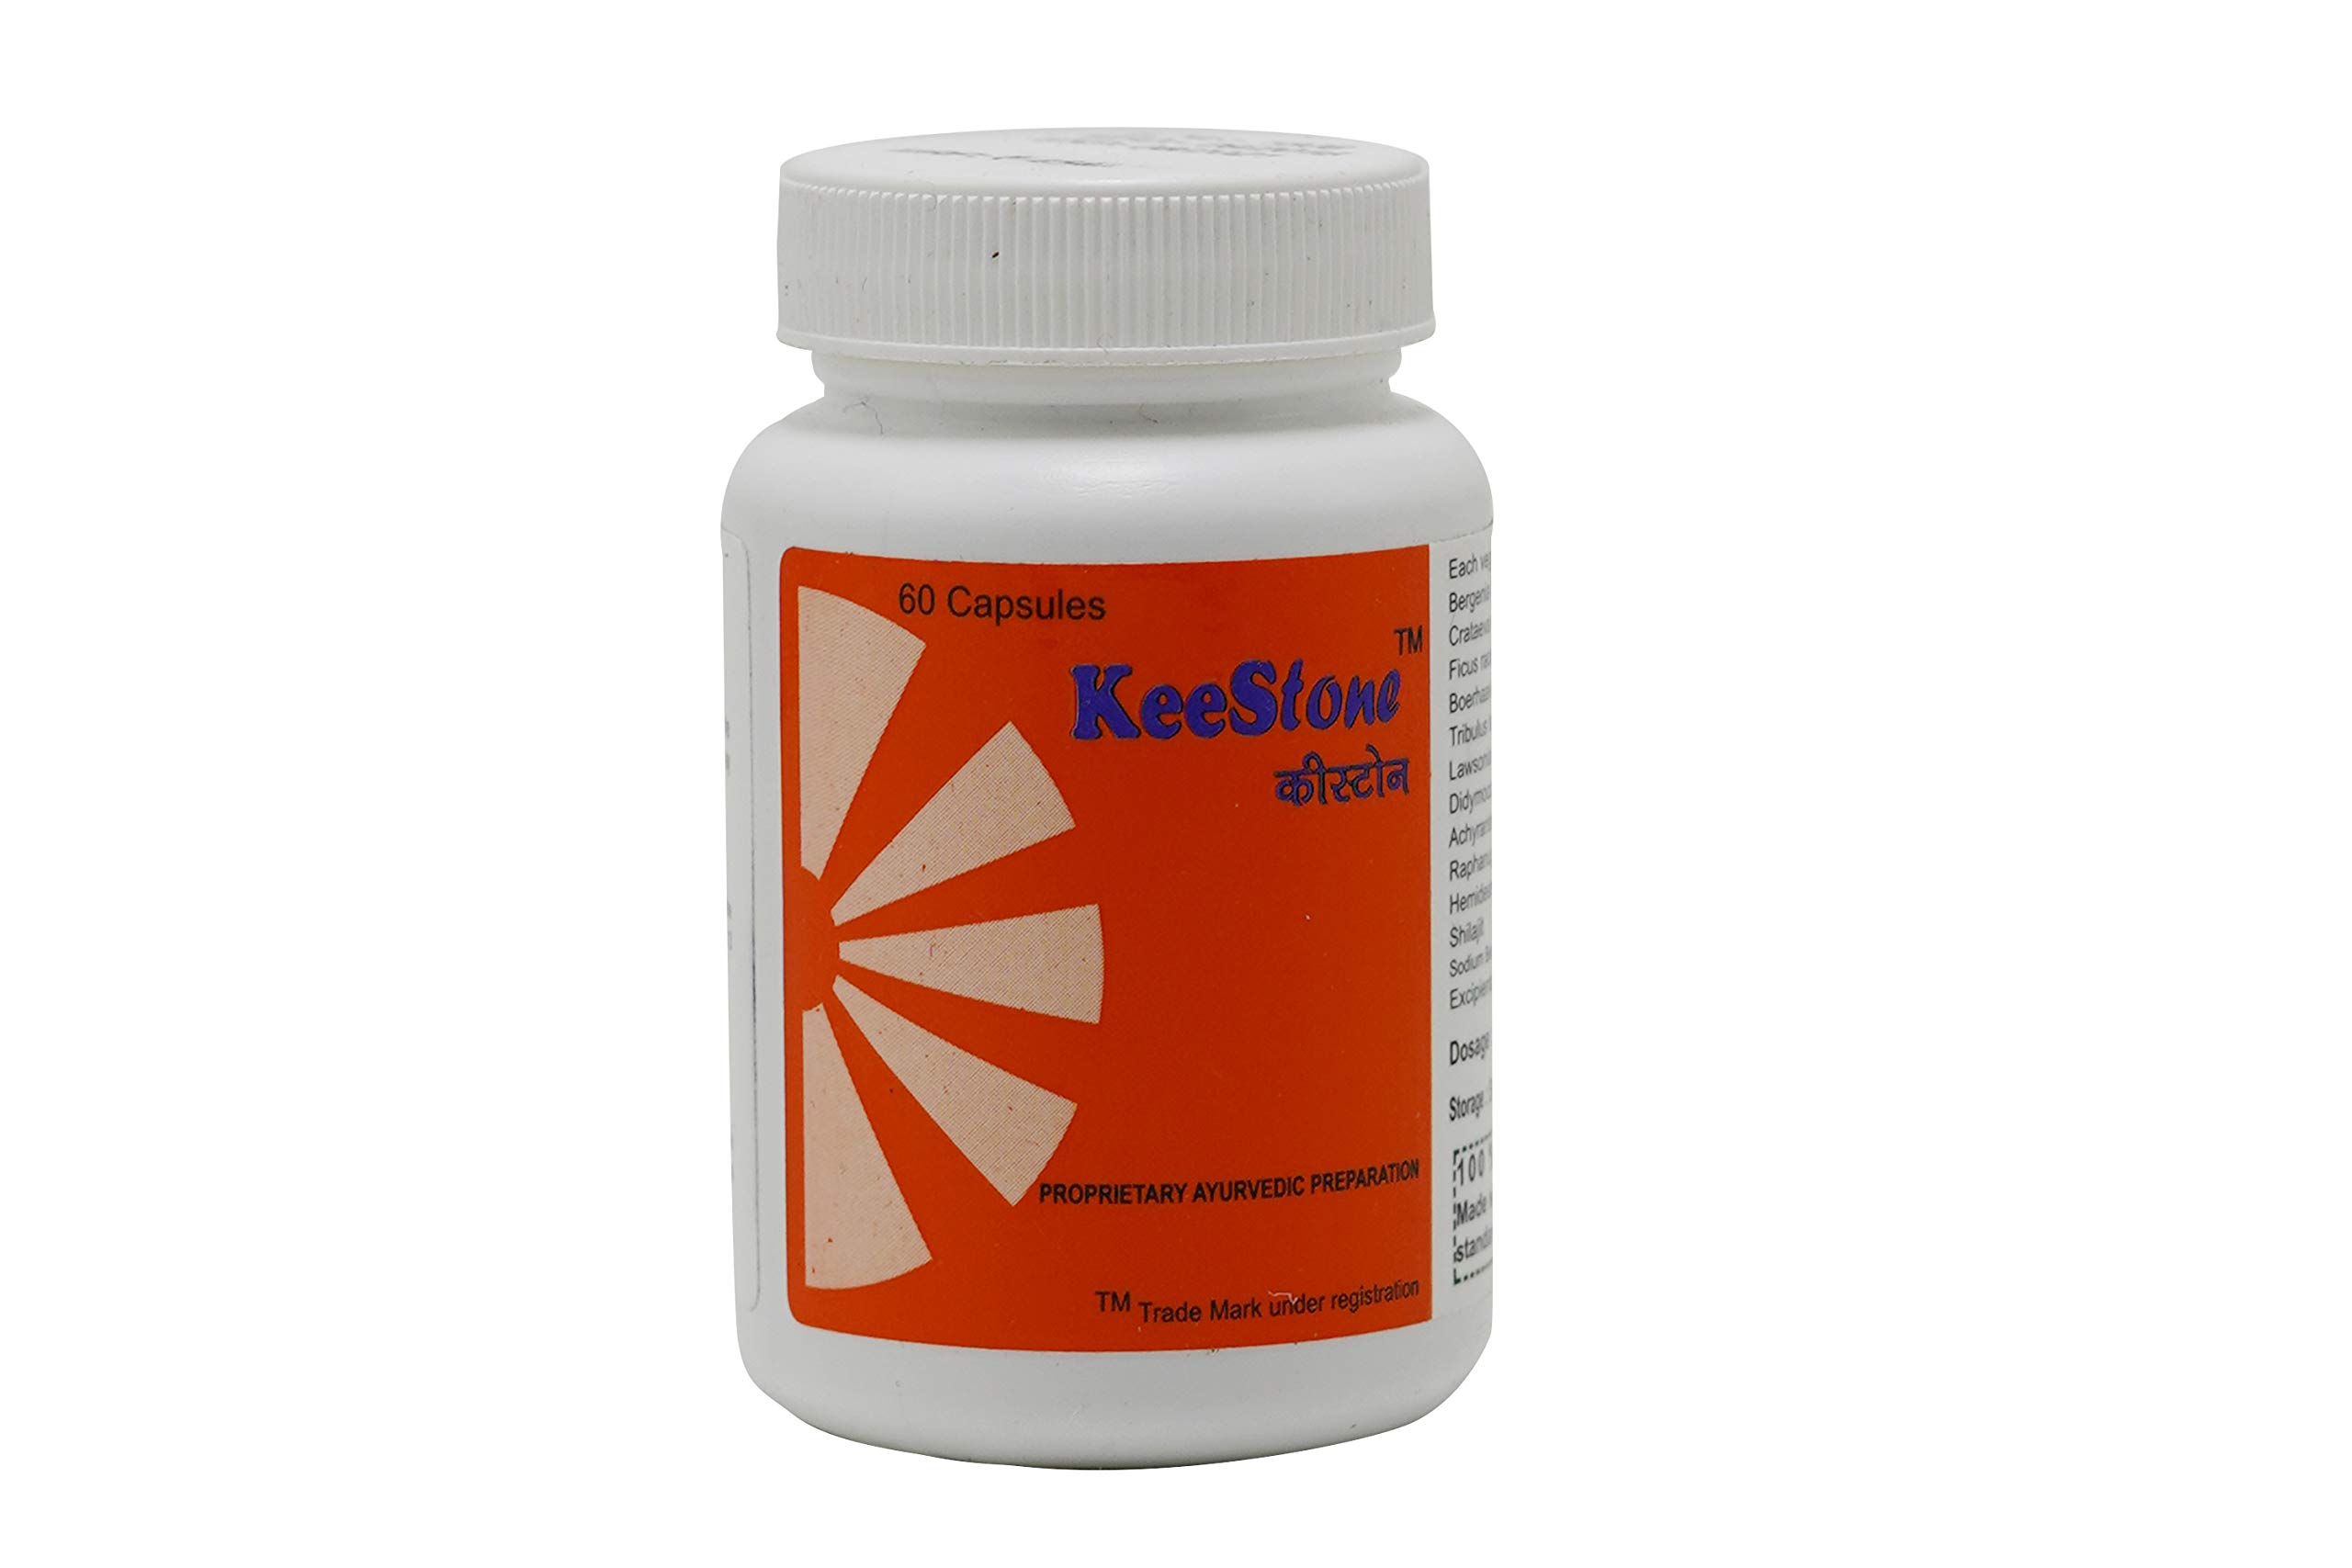 Kee Pharma, Kee Stone, Ayurvedic medicin- Buy Online in Pakistan at  Desertcart